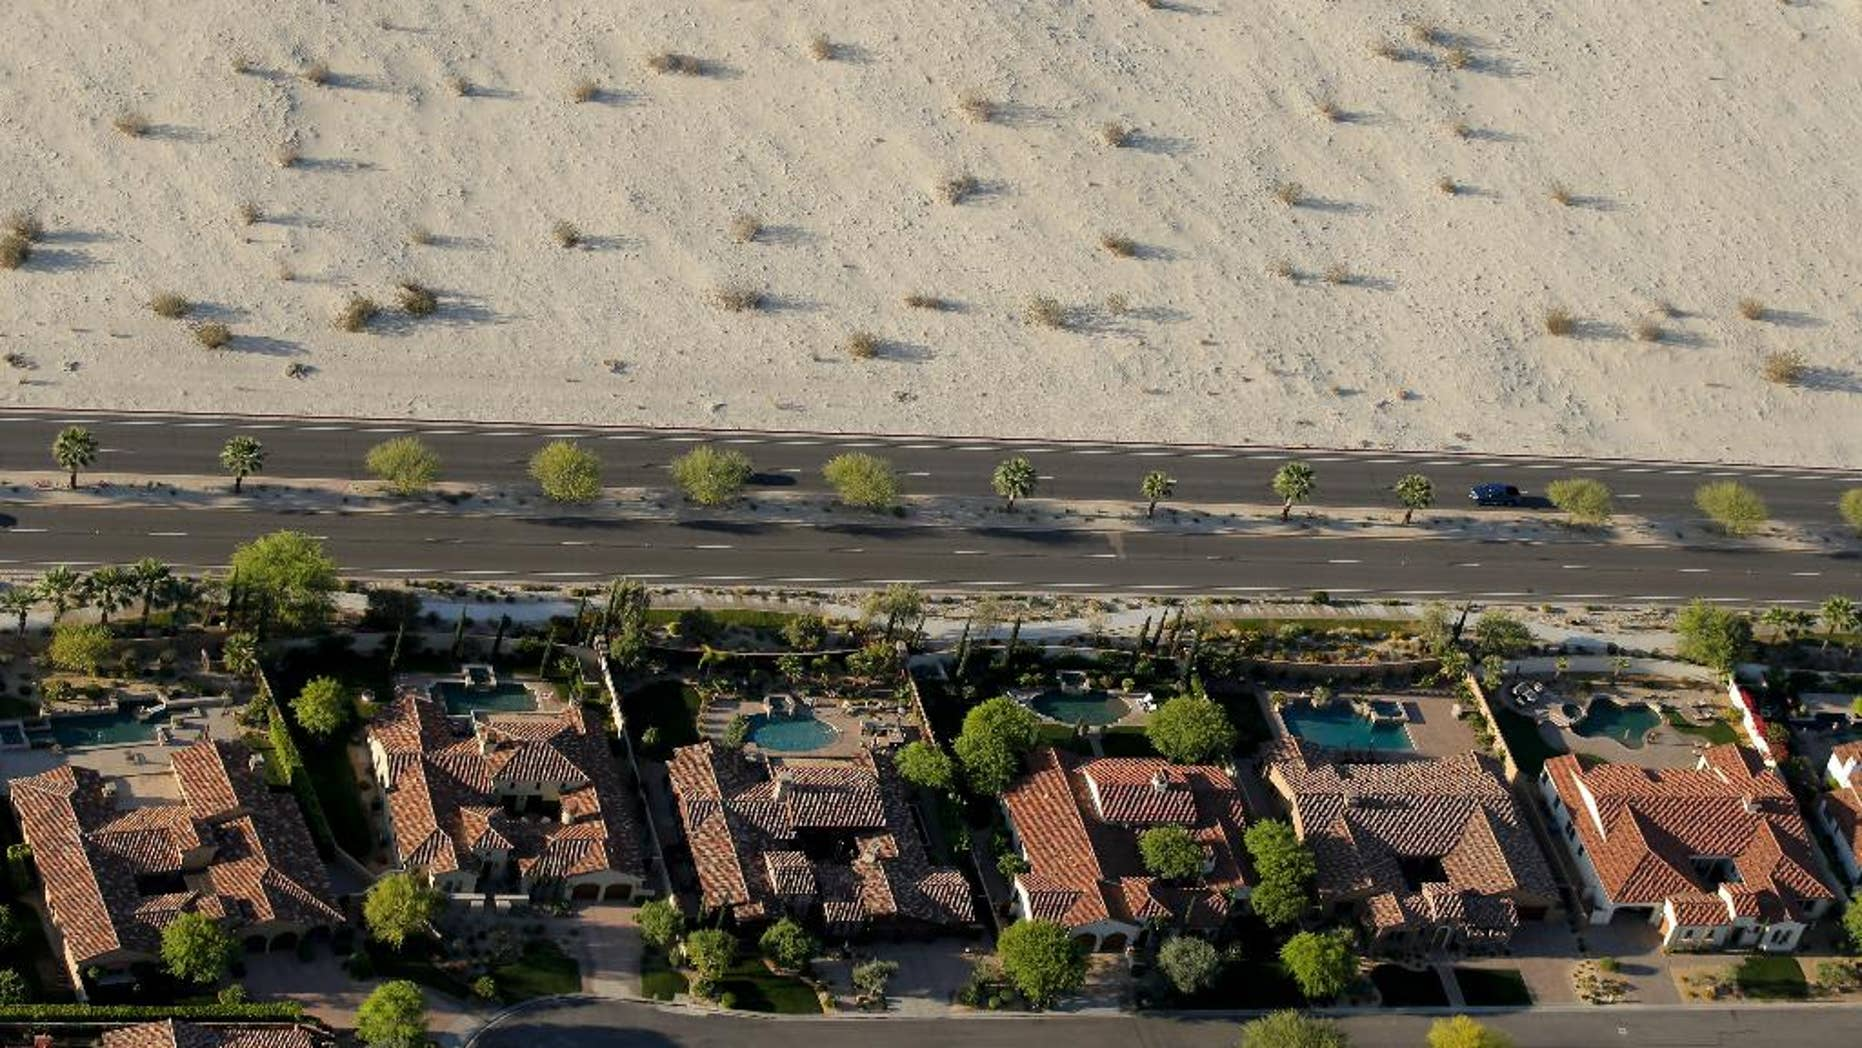 Homes with swimming pools border the desert of this neighborhood Friday, April 3, 2015, in Cathedral City, Calif. California Gov. Jerry Brown ordered officials Wednesday to impose statewide mandatory water restrictions for the first time in history as surveyors found the lowest snow level in the Sierra Nevada snowpack in 65 years of record-keeping. (AP Photo/Chris Carlson)